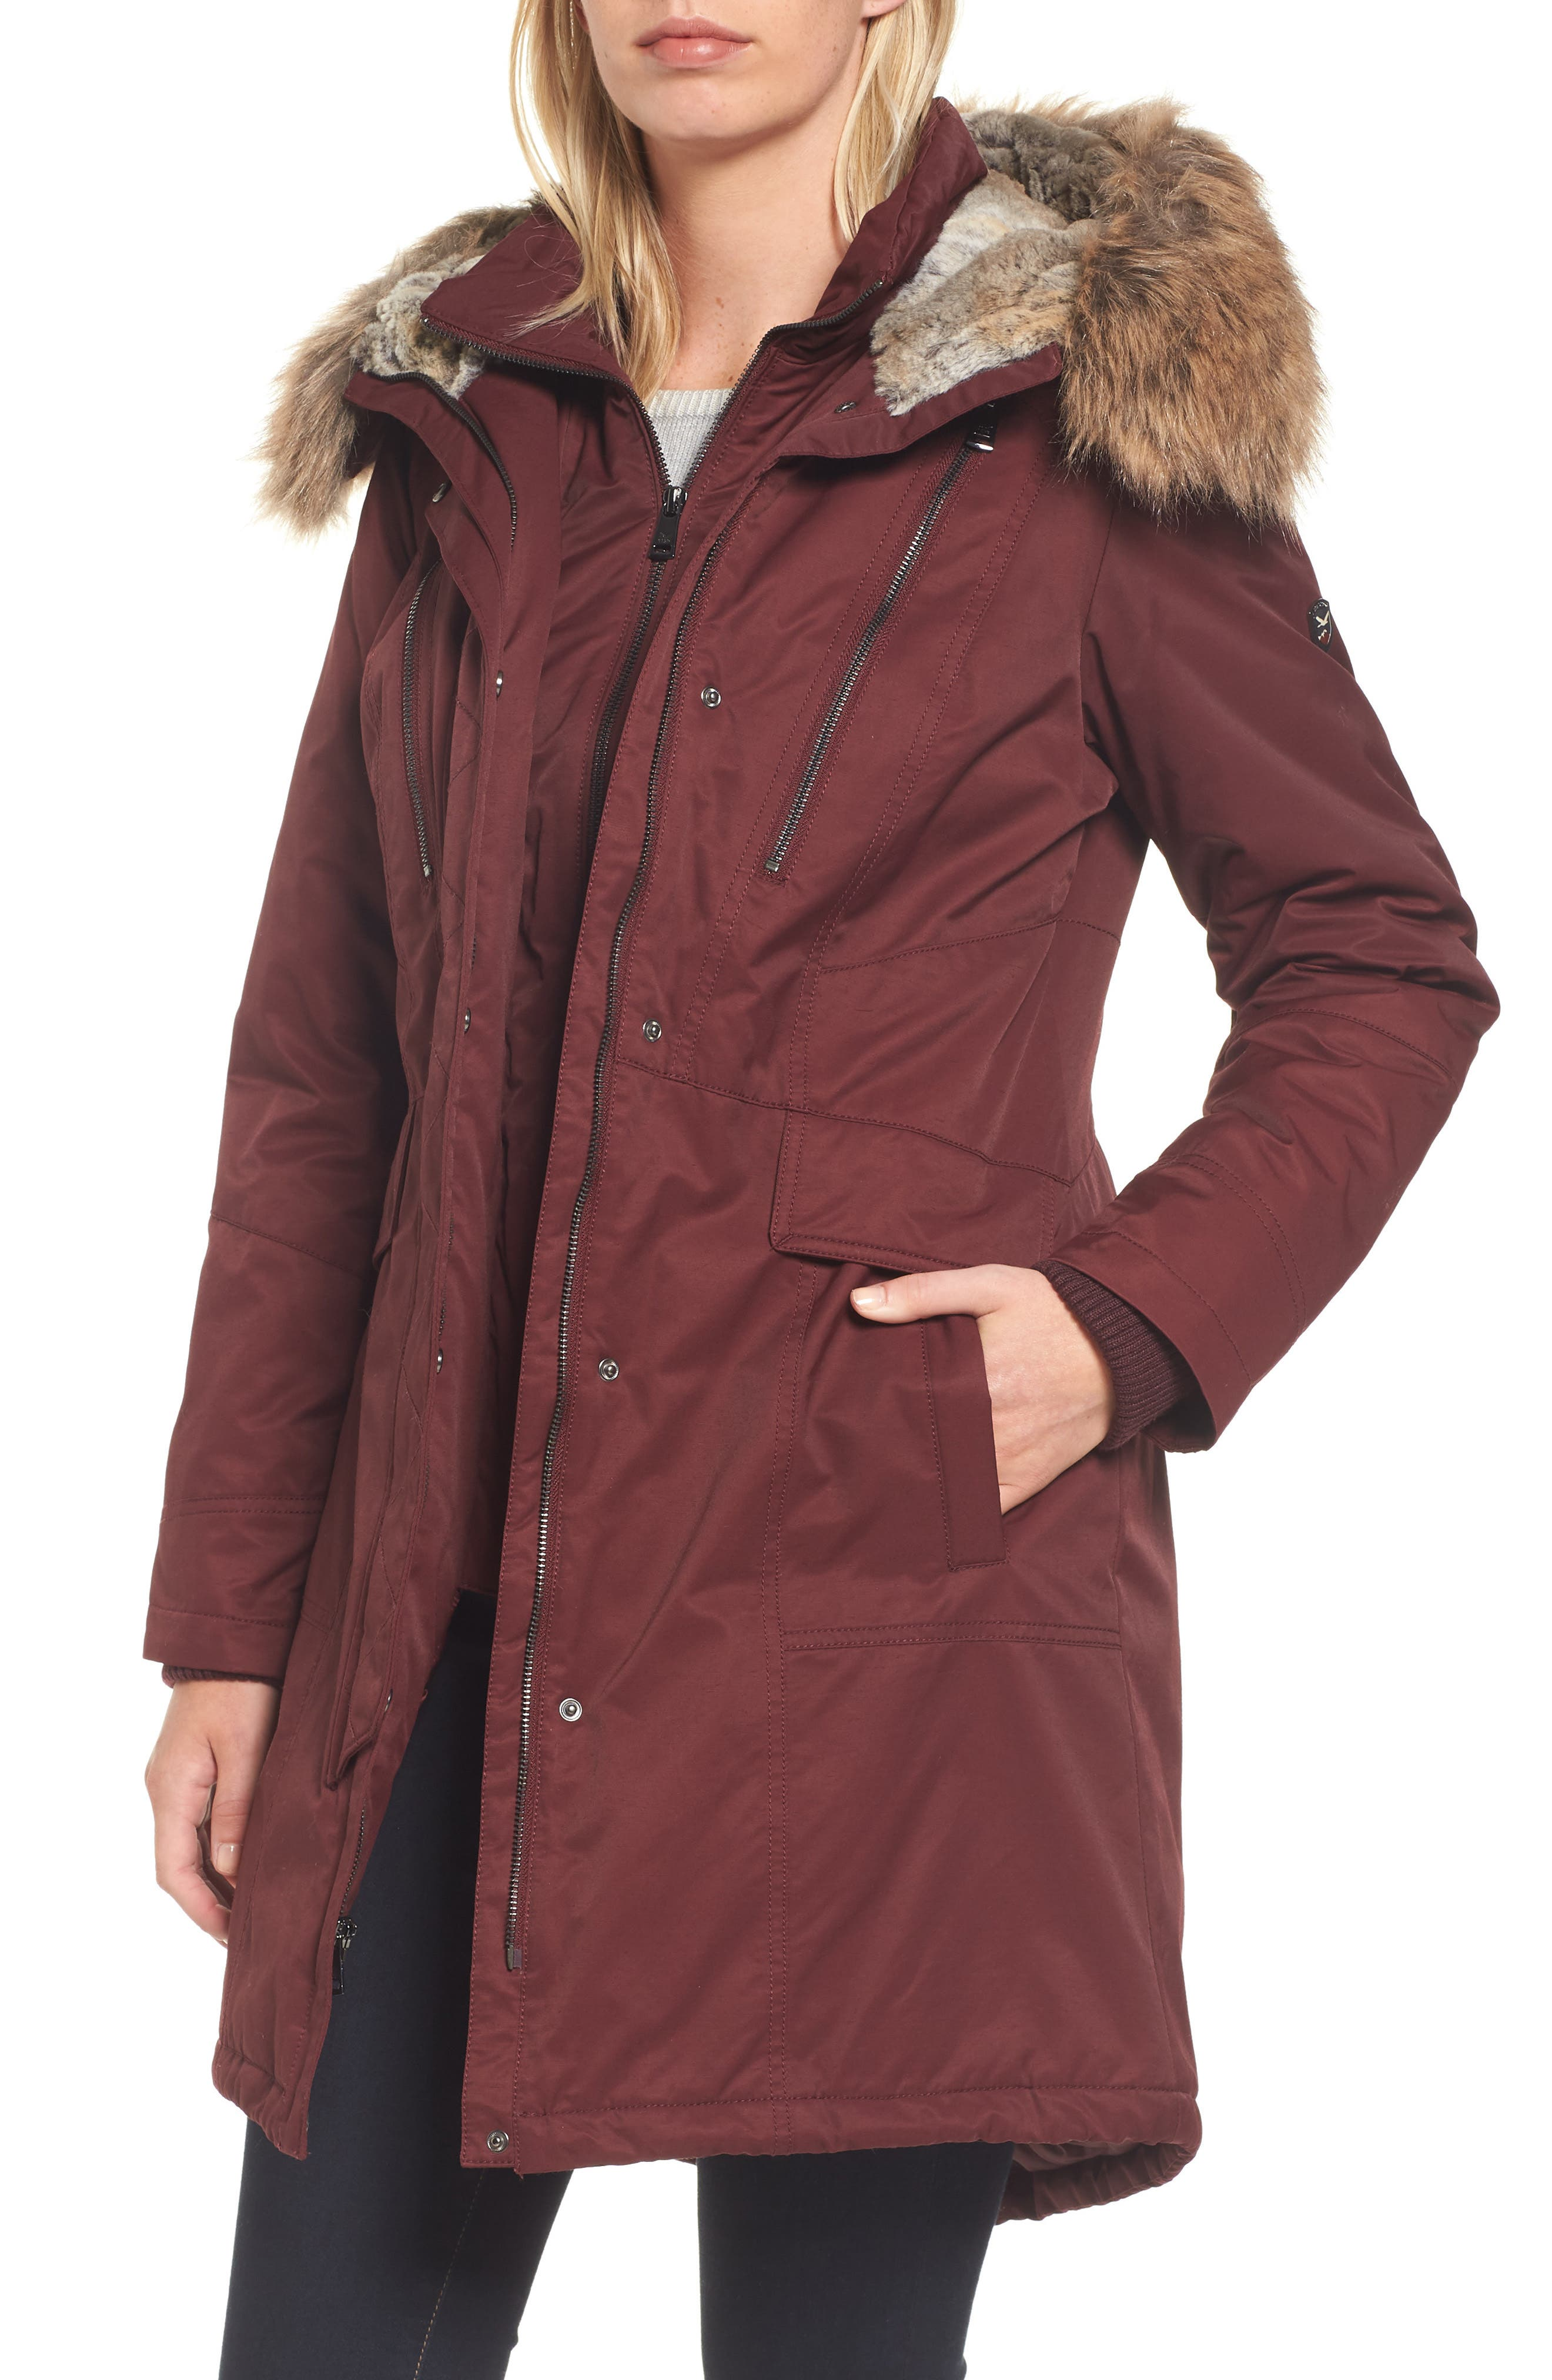 Main Image - 1 Madison Insulated Parka with Faux Fur Trim